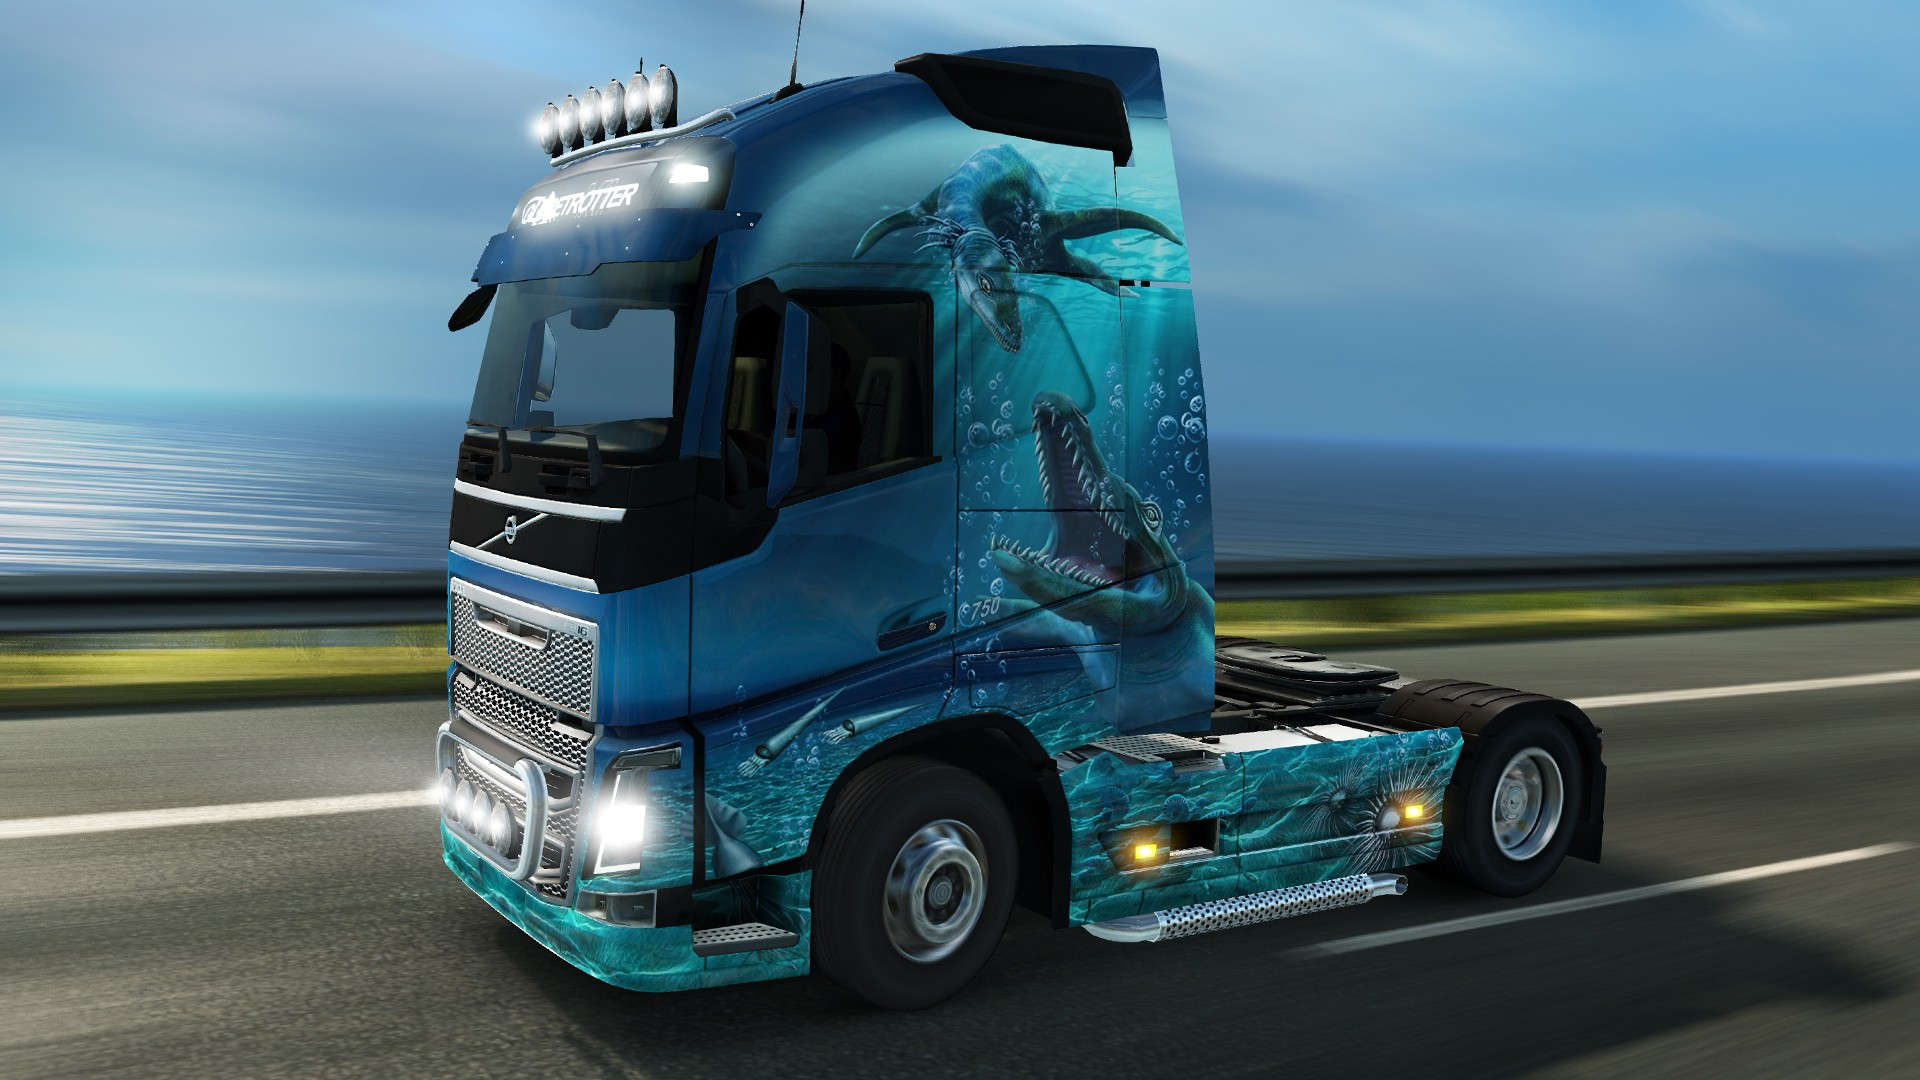 Euro truck simulator 2 - space paint jobs pack download free download